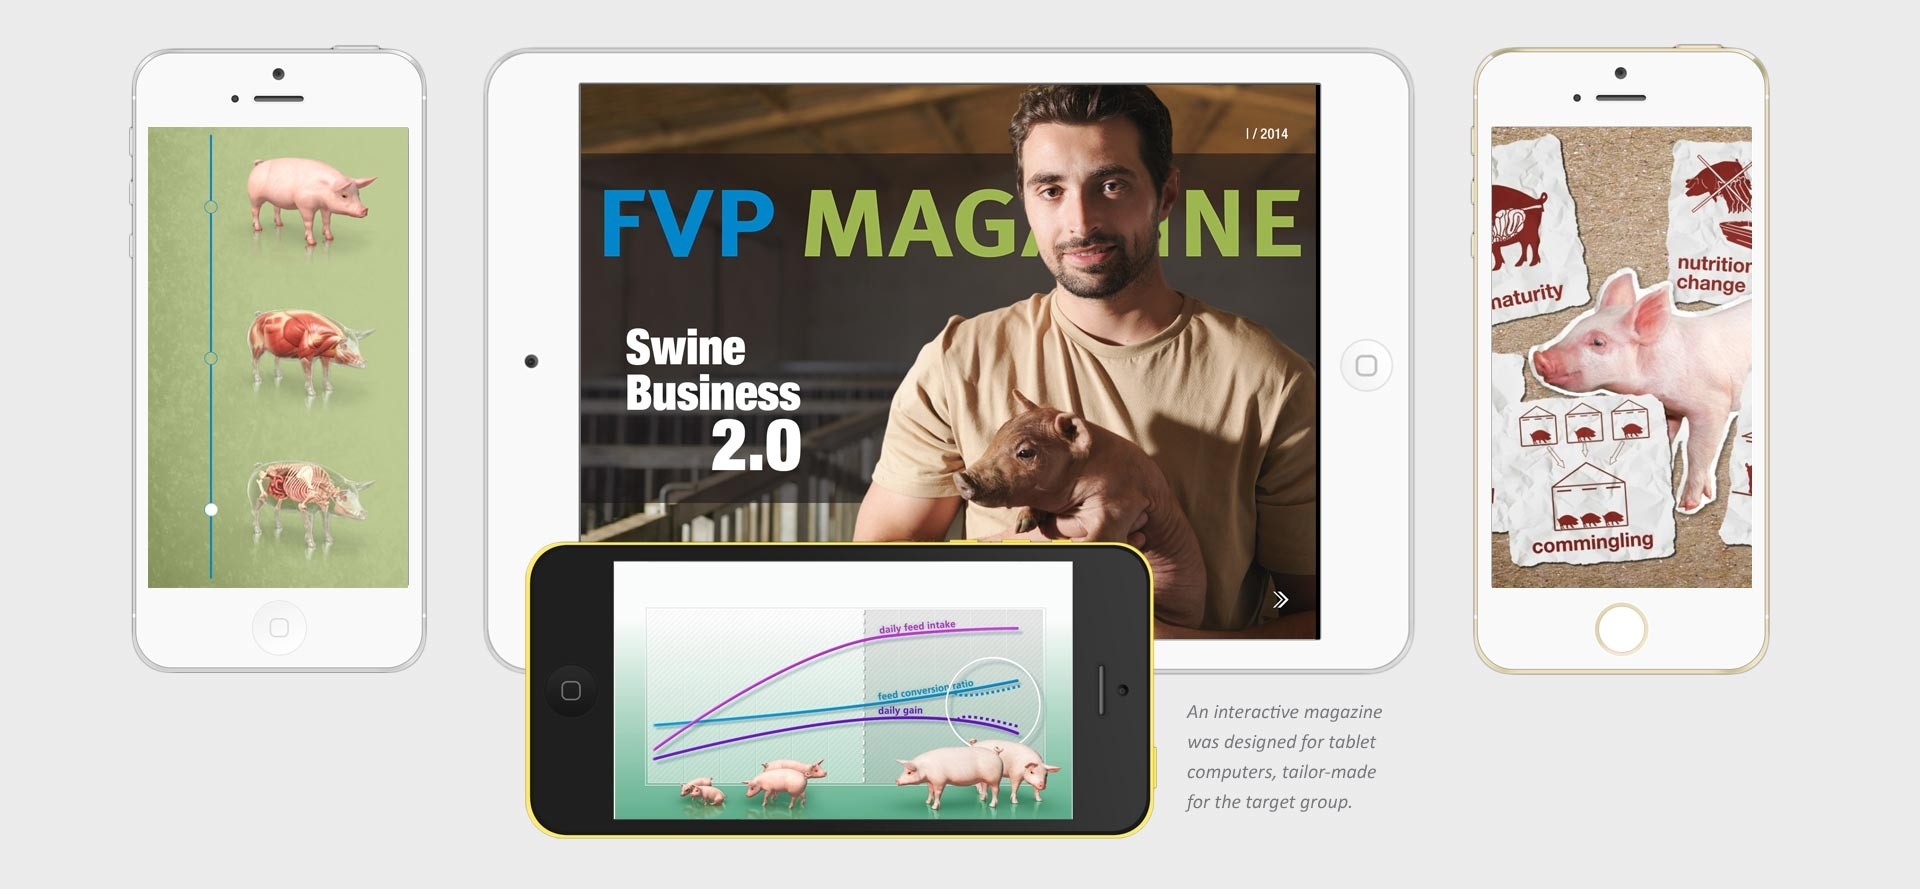 Swine Business Interactive Magazine